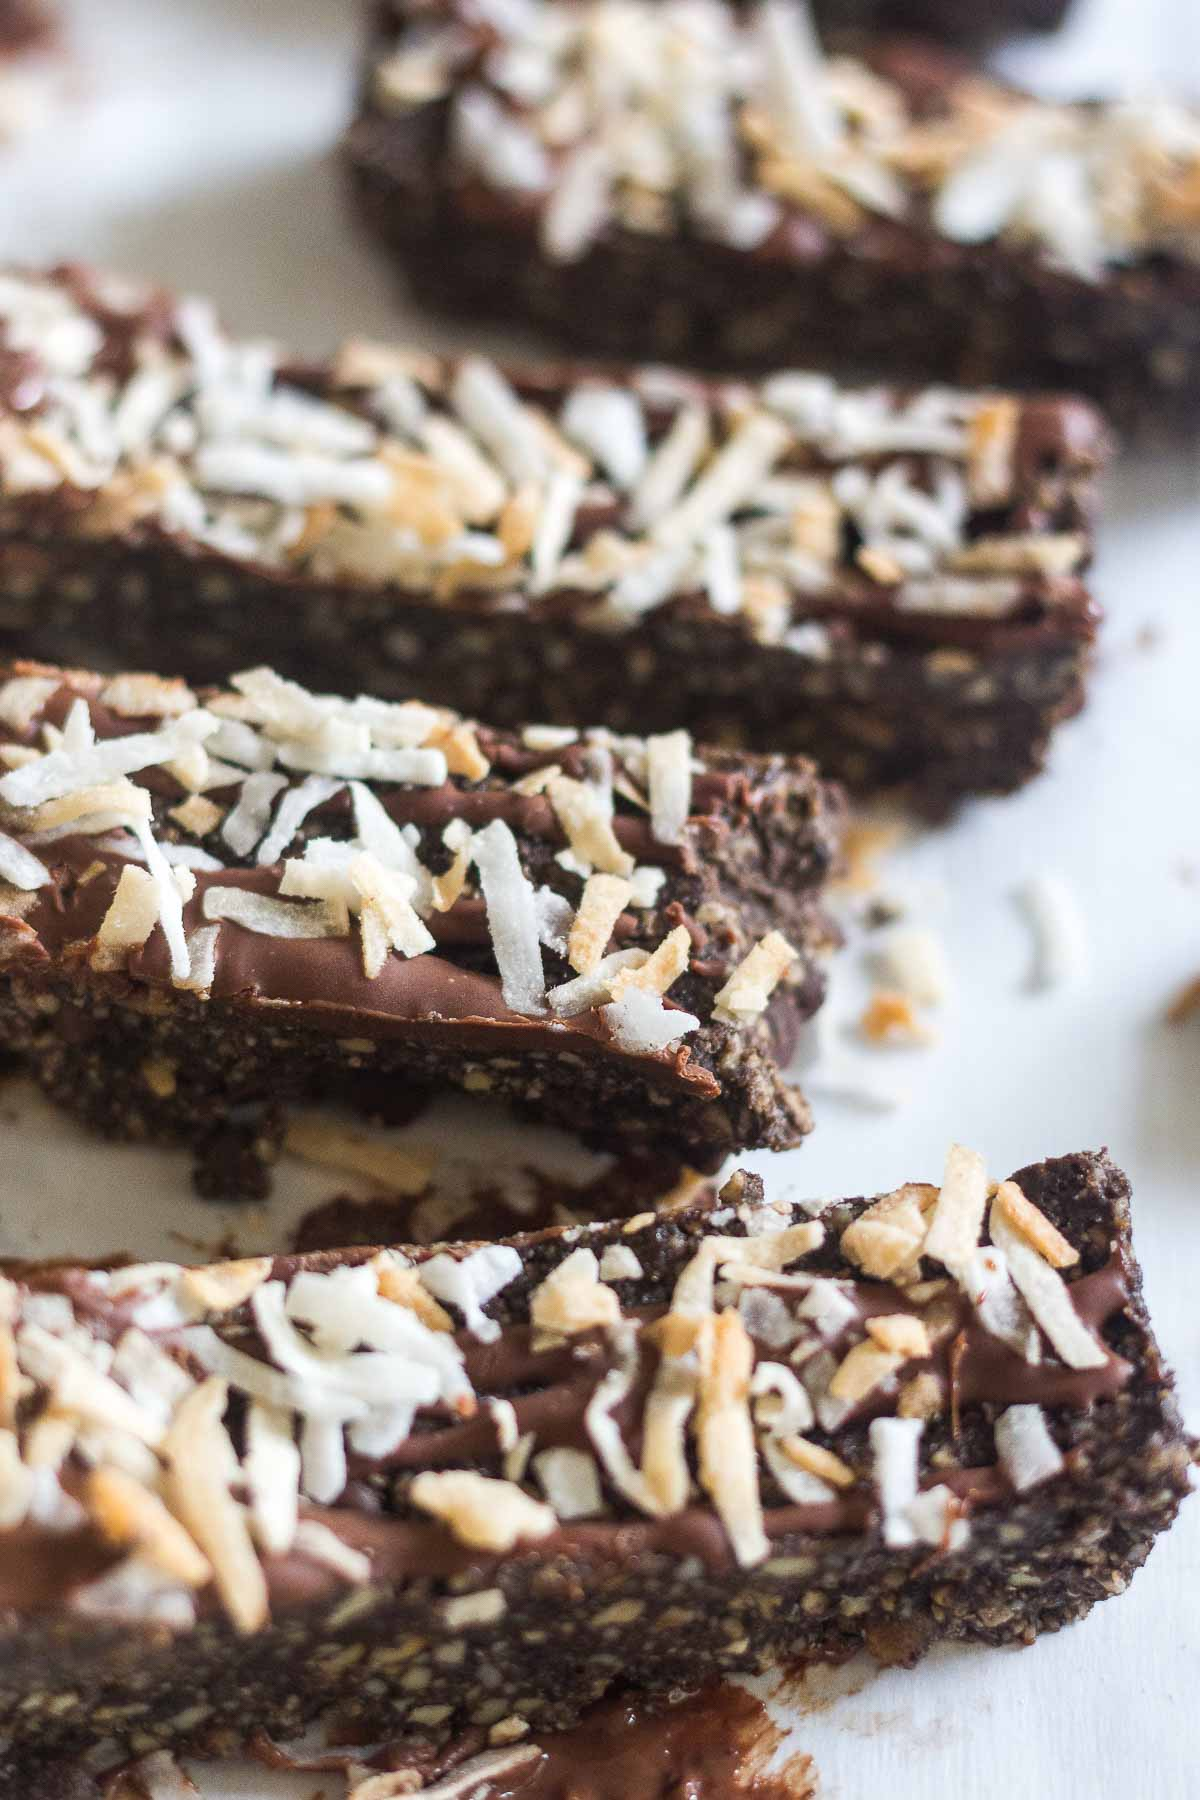 These dark chocolate protein bars are so easy to make in your blender or food processor and they're filled with raw and healthy ingredients. These gluten free protein bars are made with cashews, dark chocolate and filled with protein and coconut.